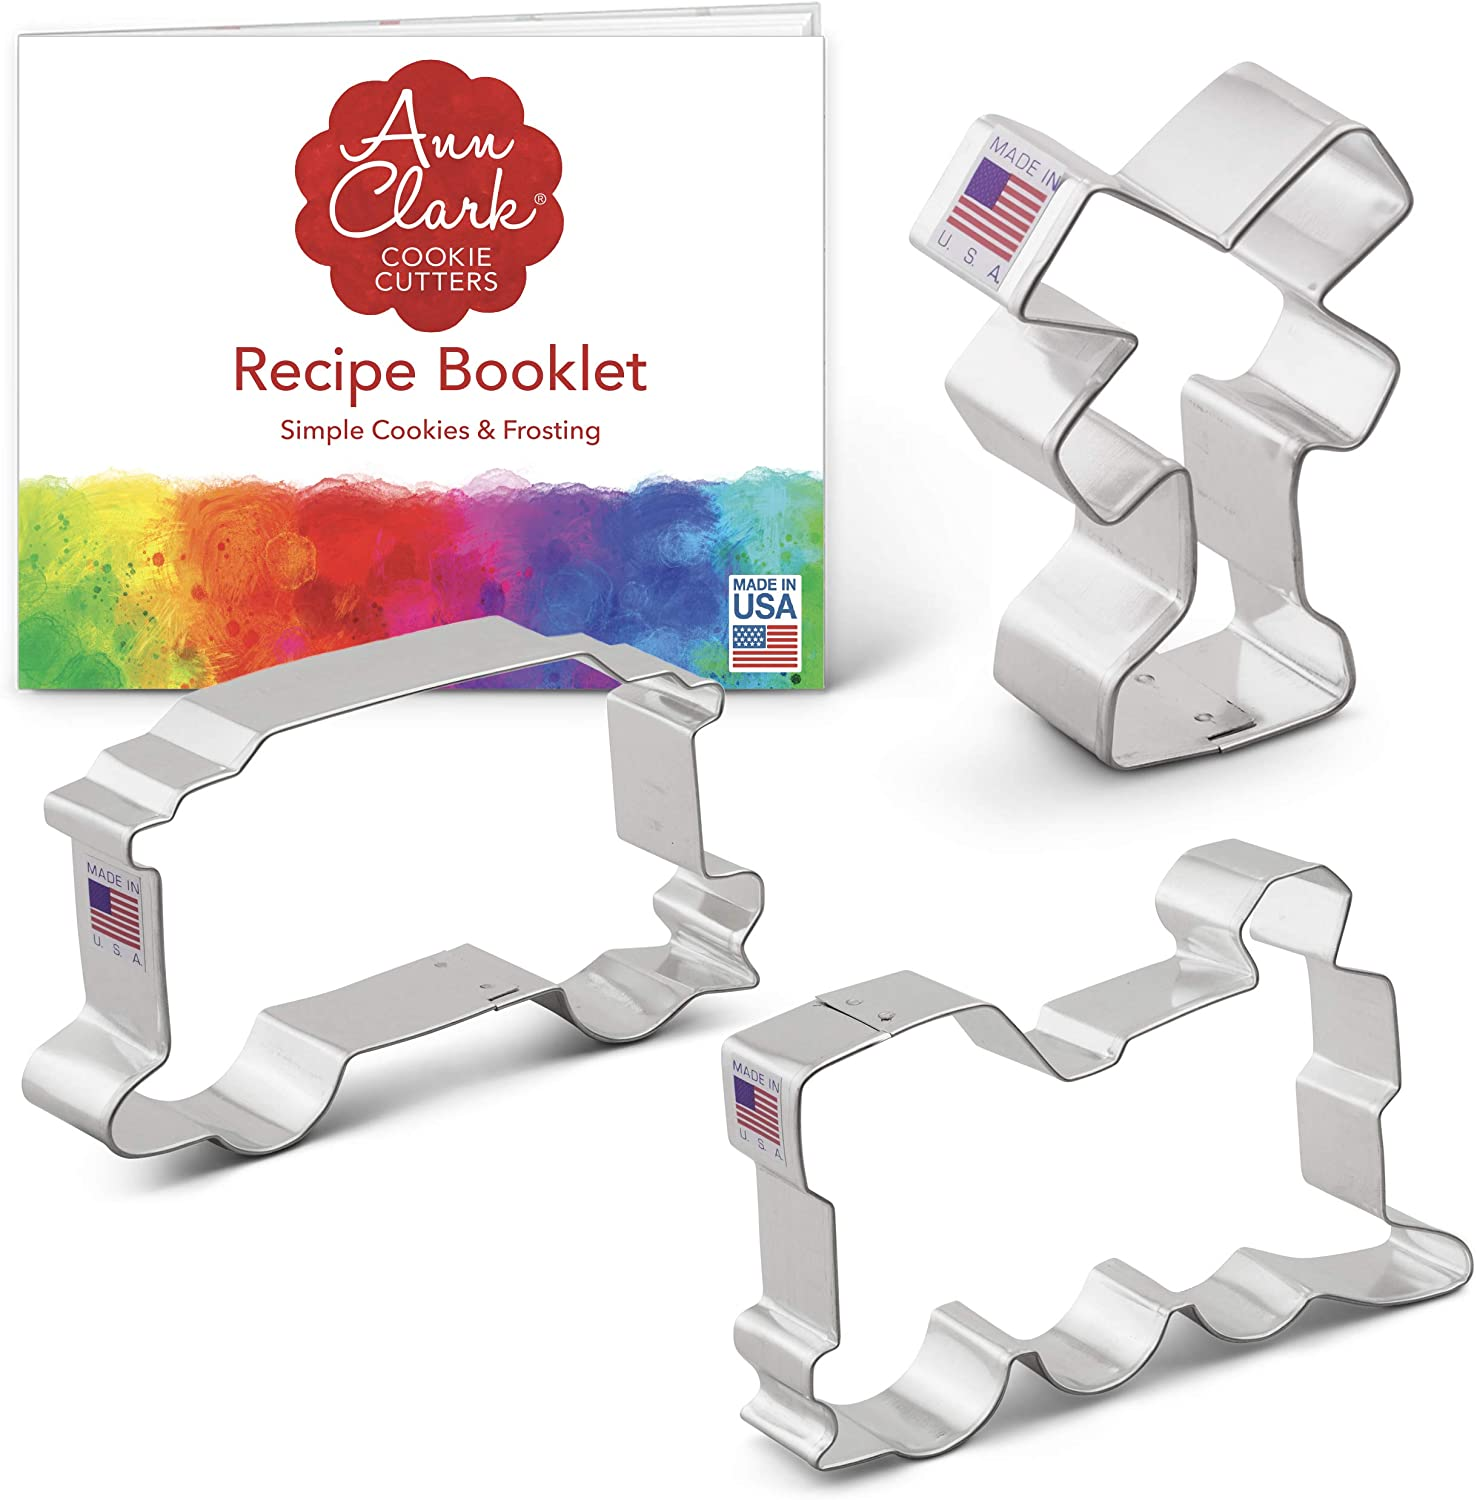 Details about  /Frame 3 Cookie Cutter 3 Sizes